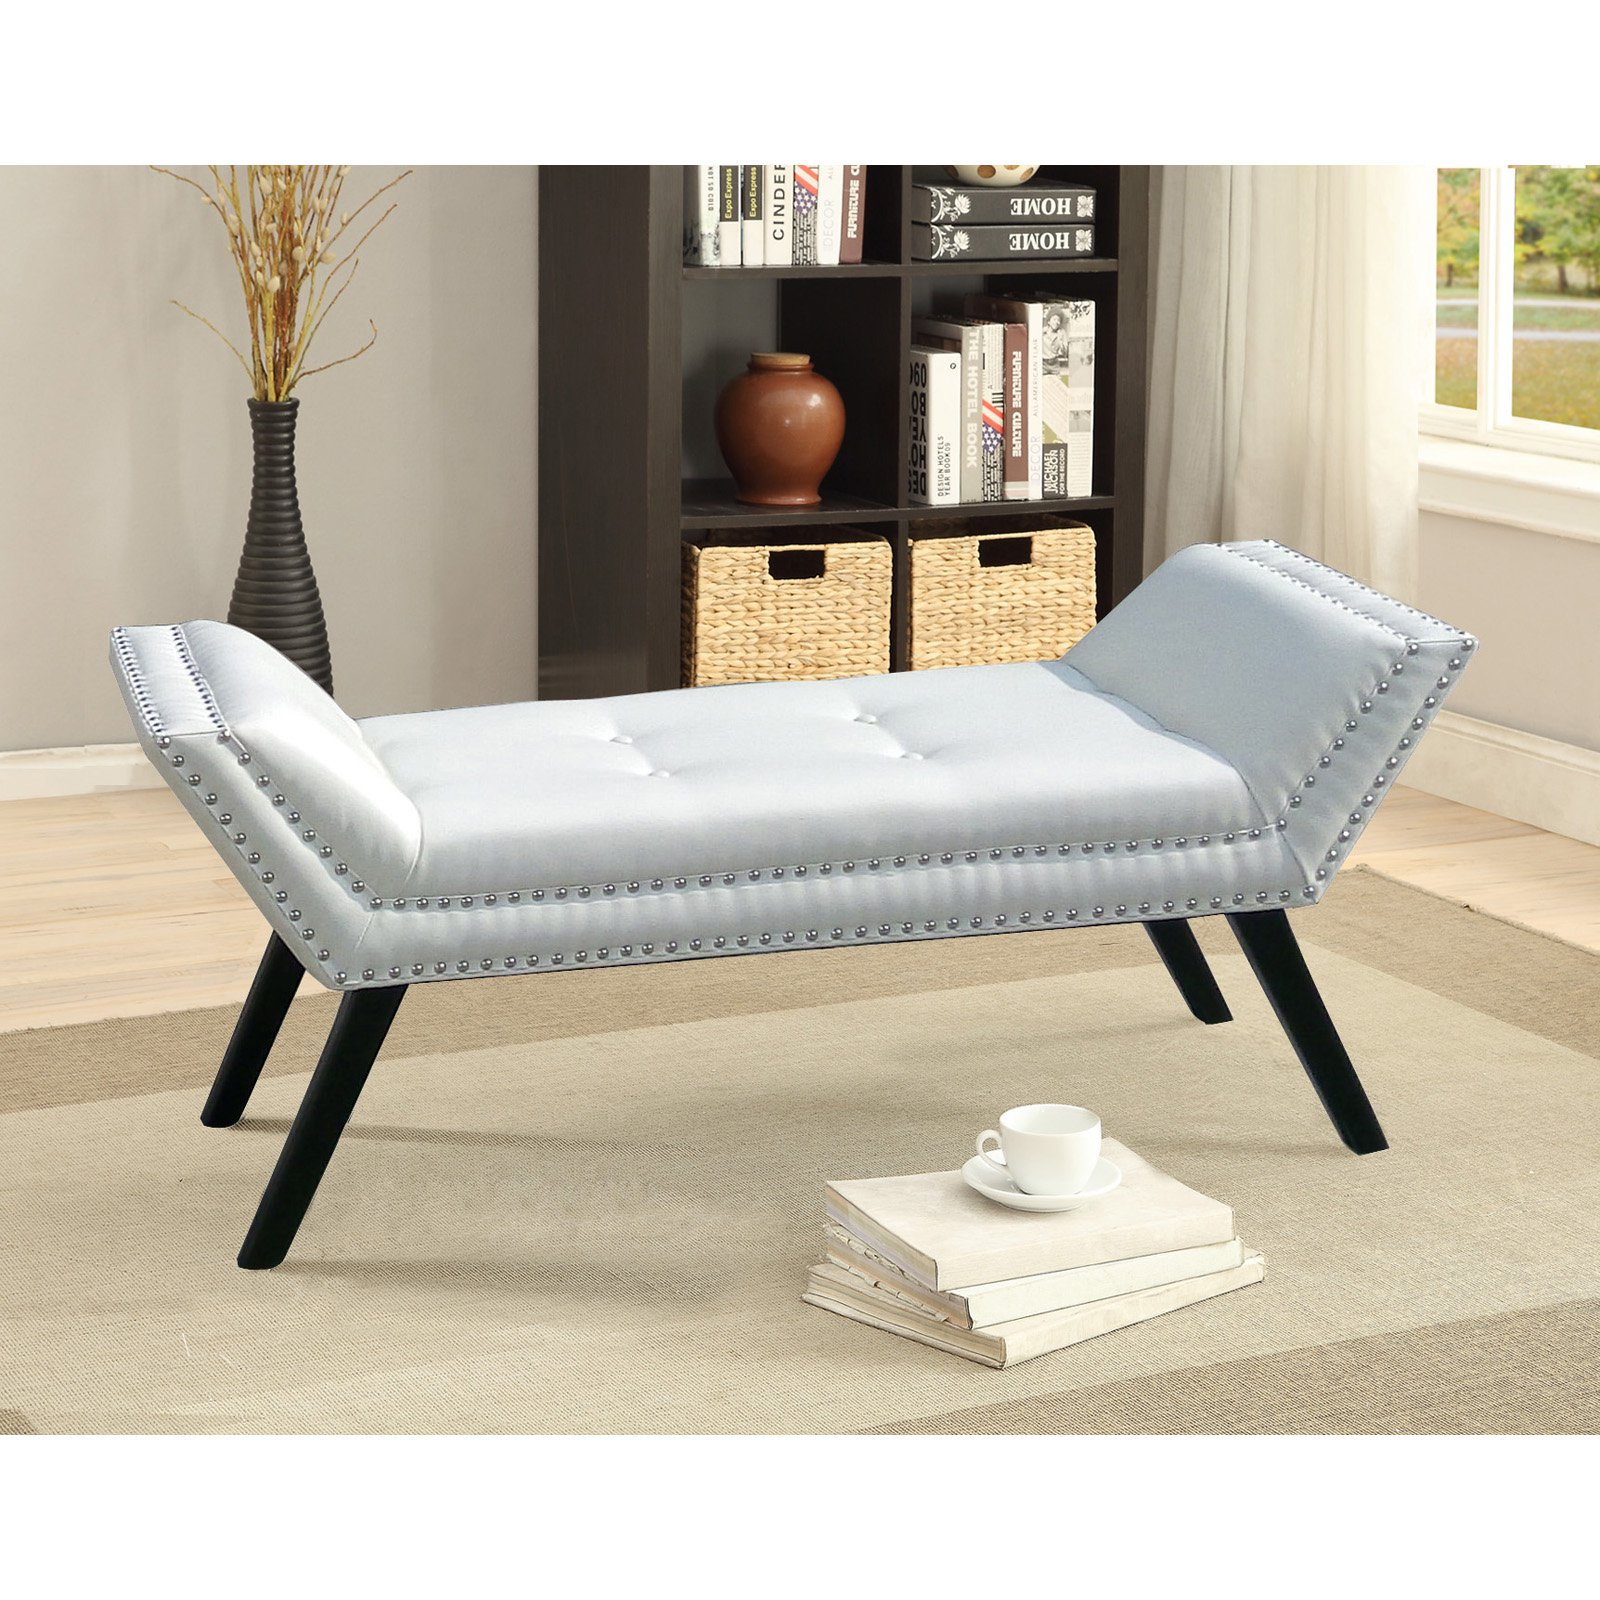 Baxton Studio Tamblin White Faux Leather Upholstered Ottoman Bench